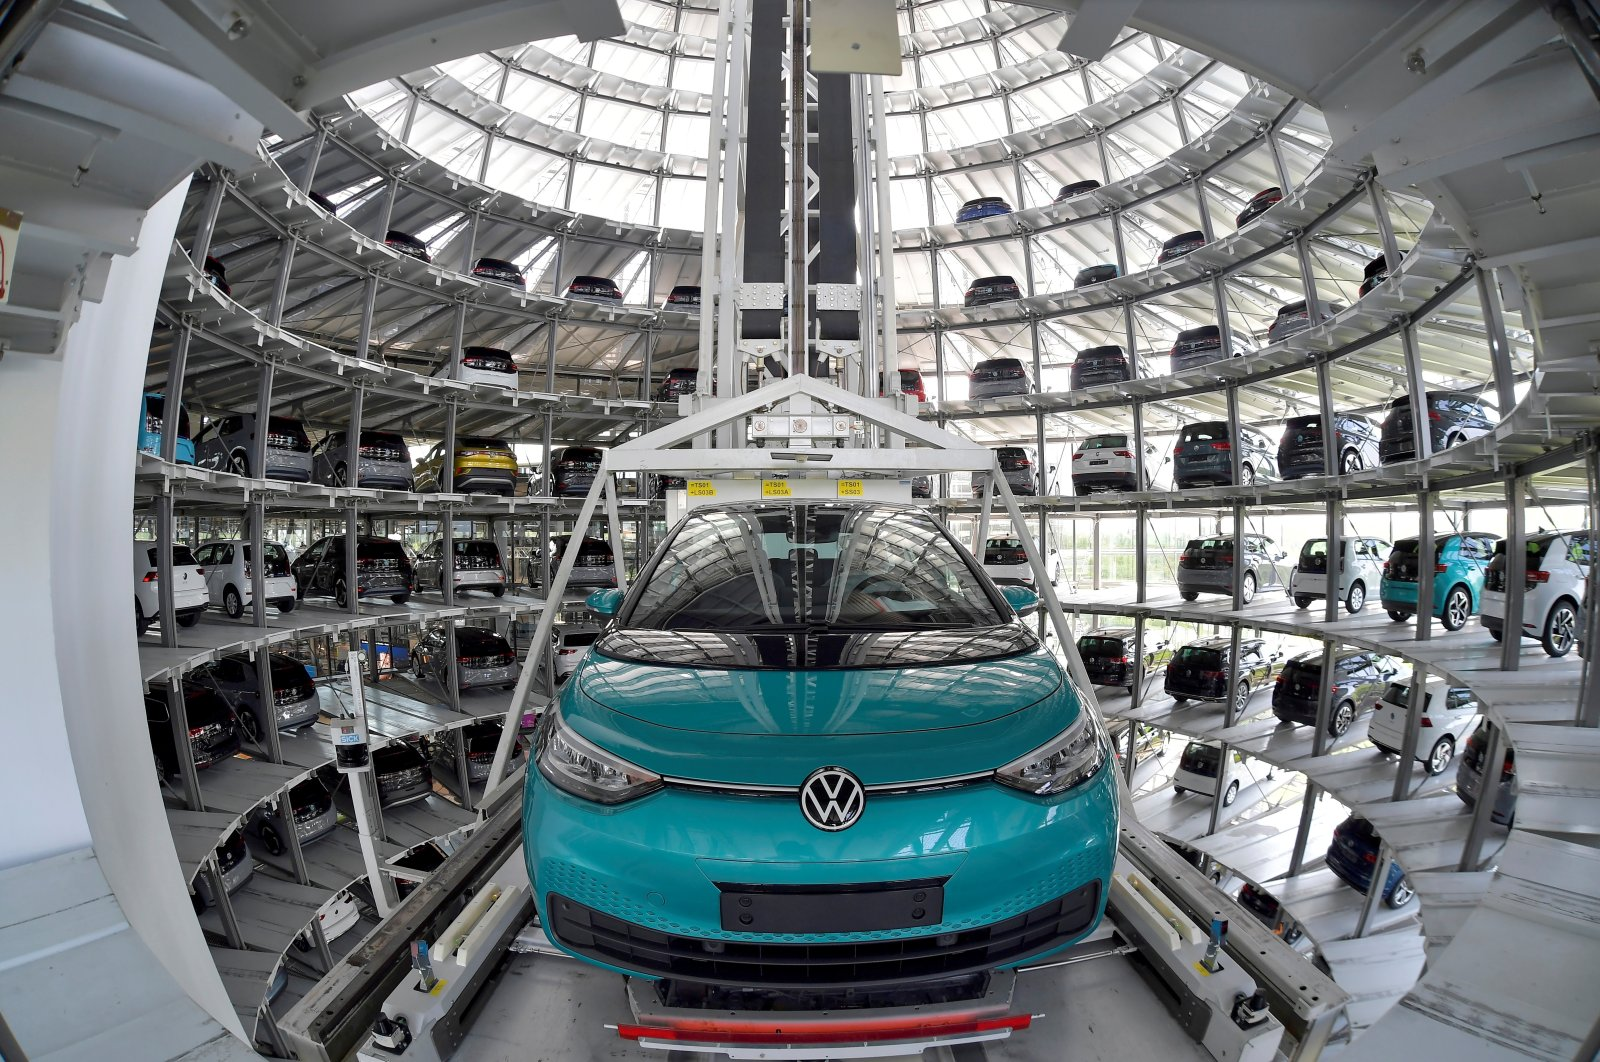 View of the depot tower of German carmaker Volkswagen's electric ID. 3 car in Dresden, Germany, June 8, 2021. (Reuters Photo)